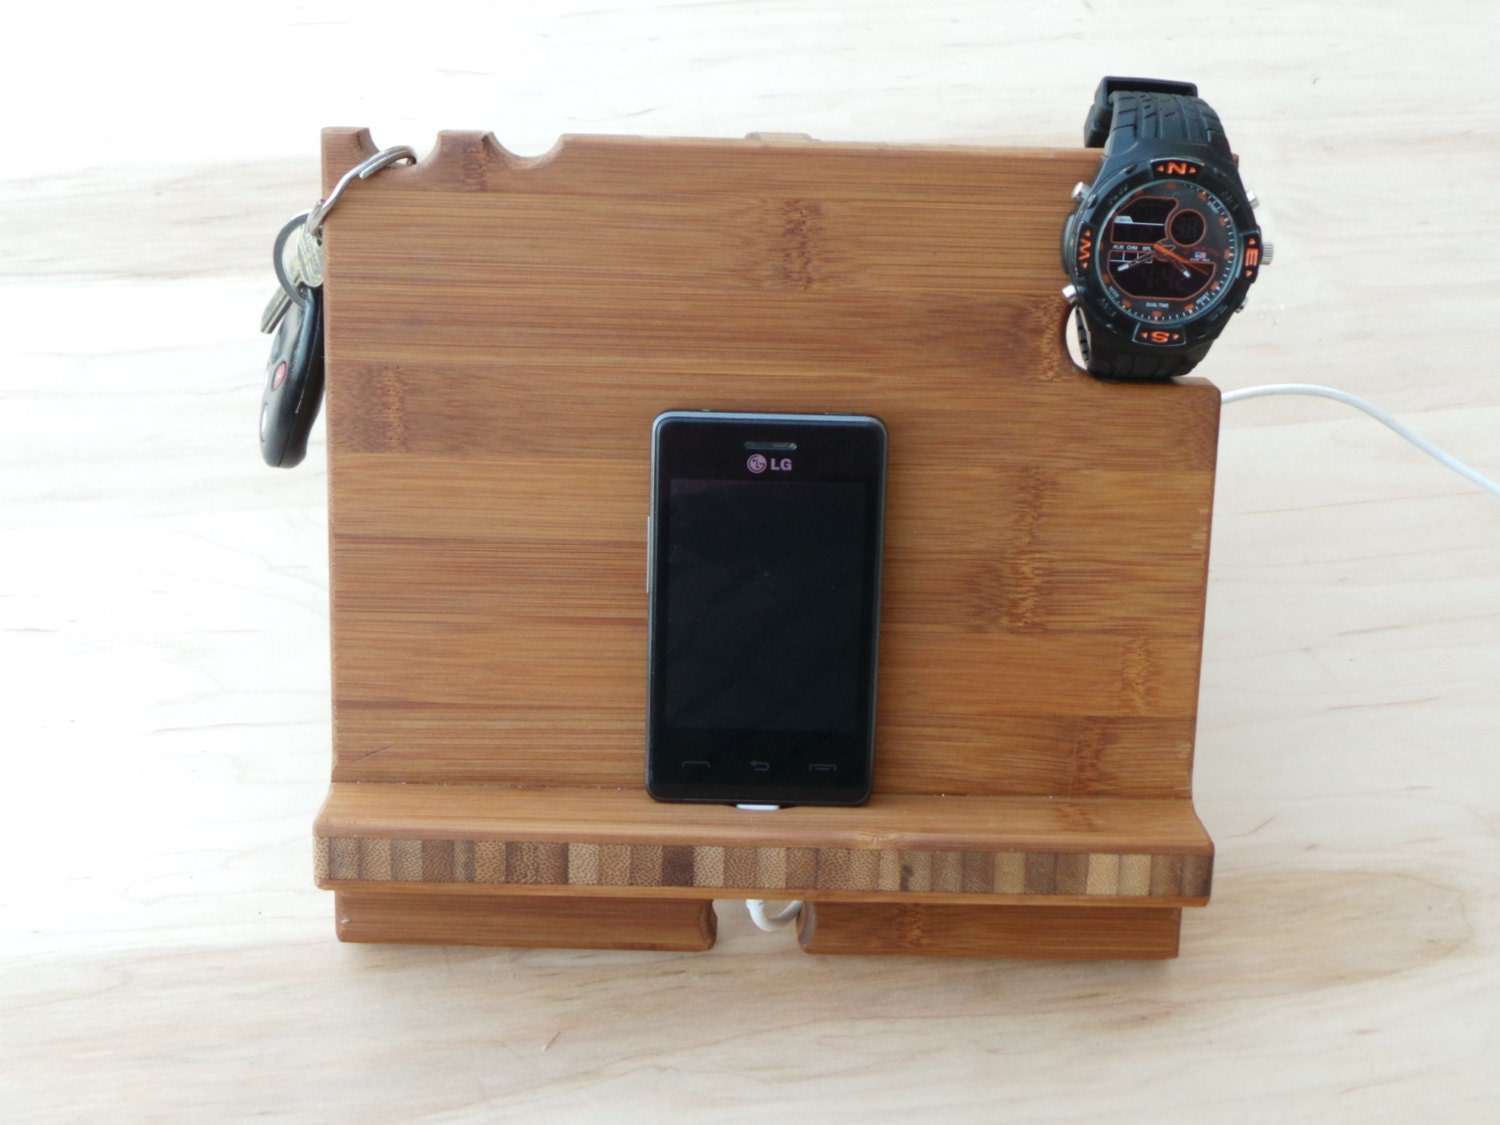 Fifth Wedding Anniversary Gifts For Men: 5th Anniversary Gift For Men Docking Station Tablet By JCBees